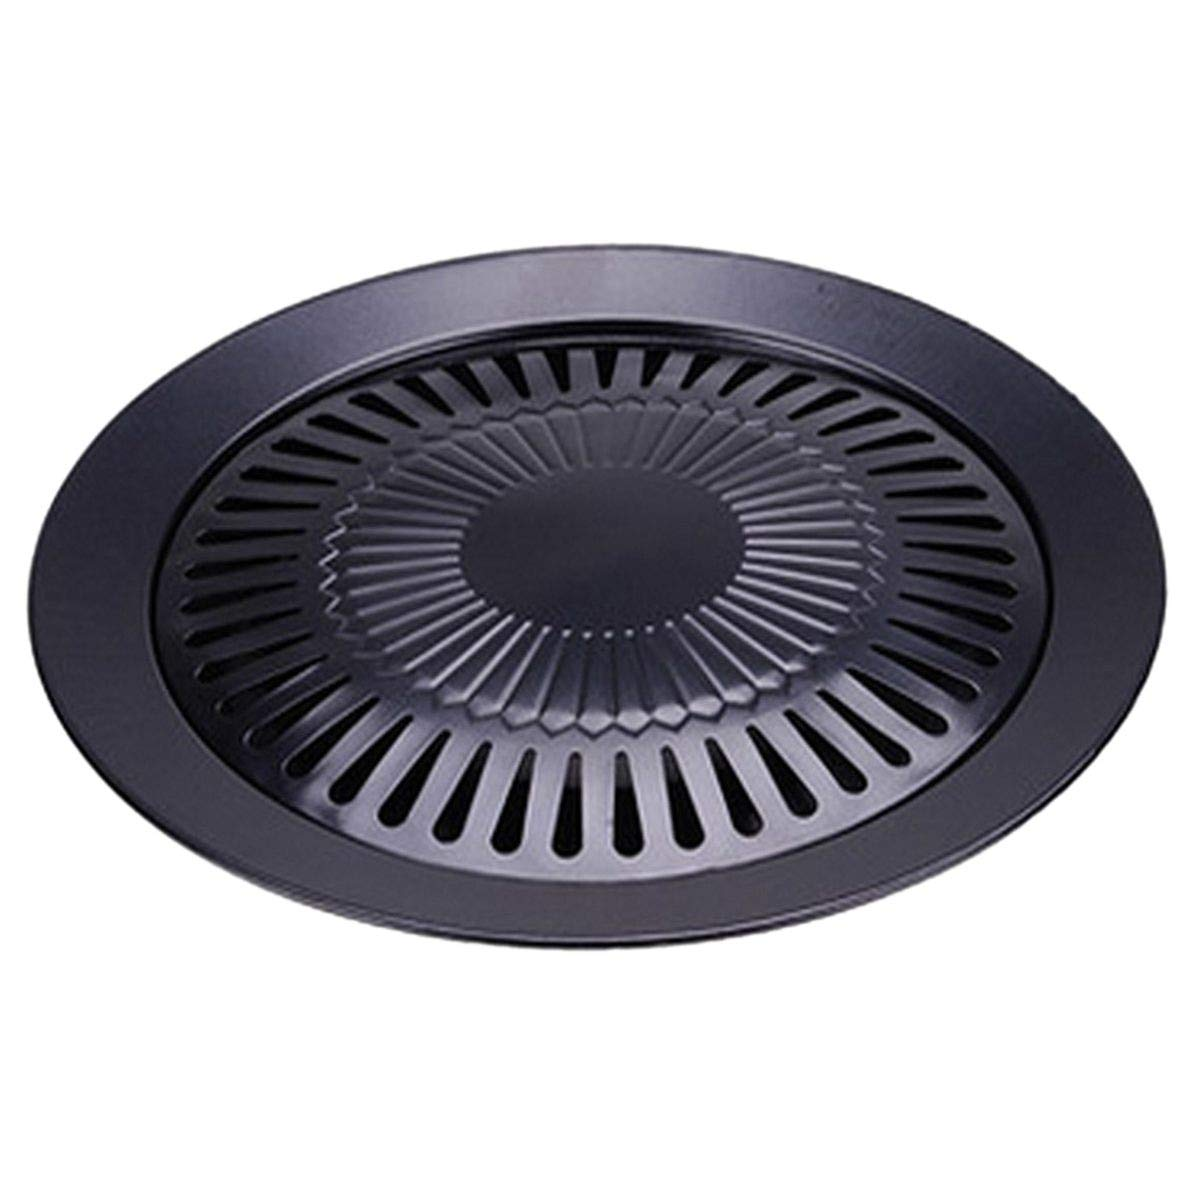 Bbq Grills - Non Stick 13 Inch Smokeless Indoor Stovetop Barbecue Bbq Grill Pan Griddle - Weber Pontoon Walmart Sale Small Electric Island Kids Clearance Smoker Parts Portable Boats Char